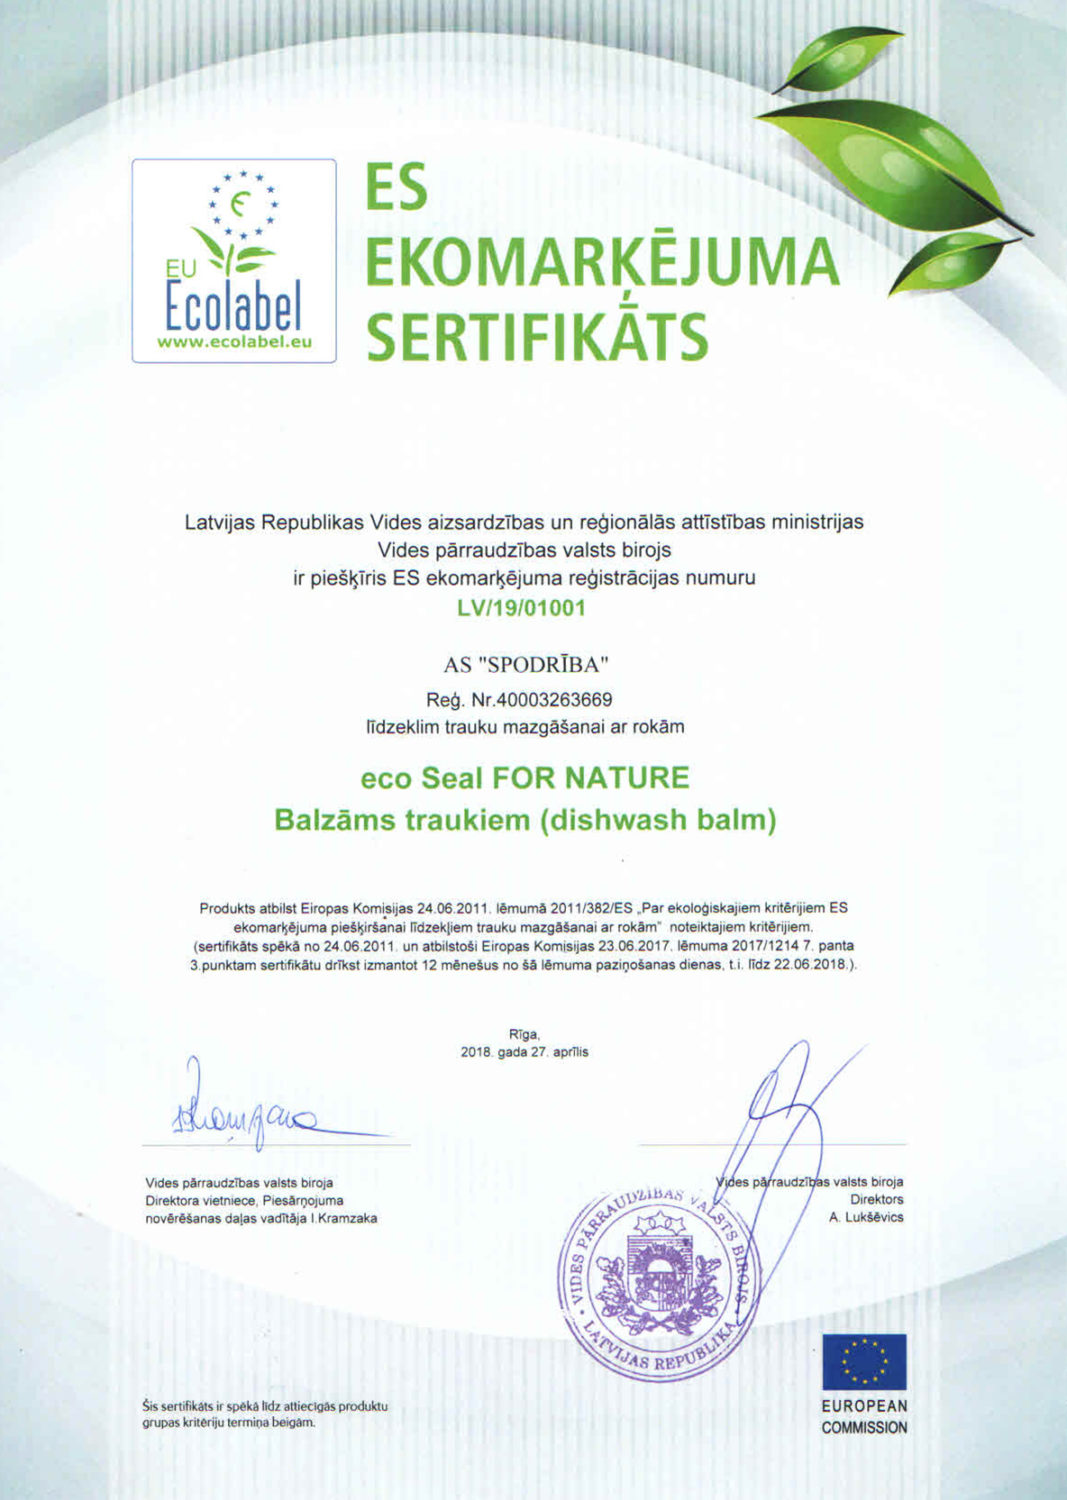 Ecolabel balzams traukiem